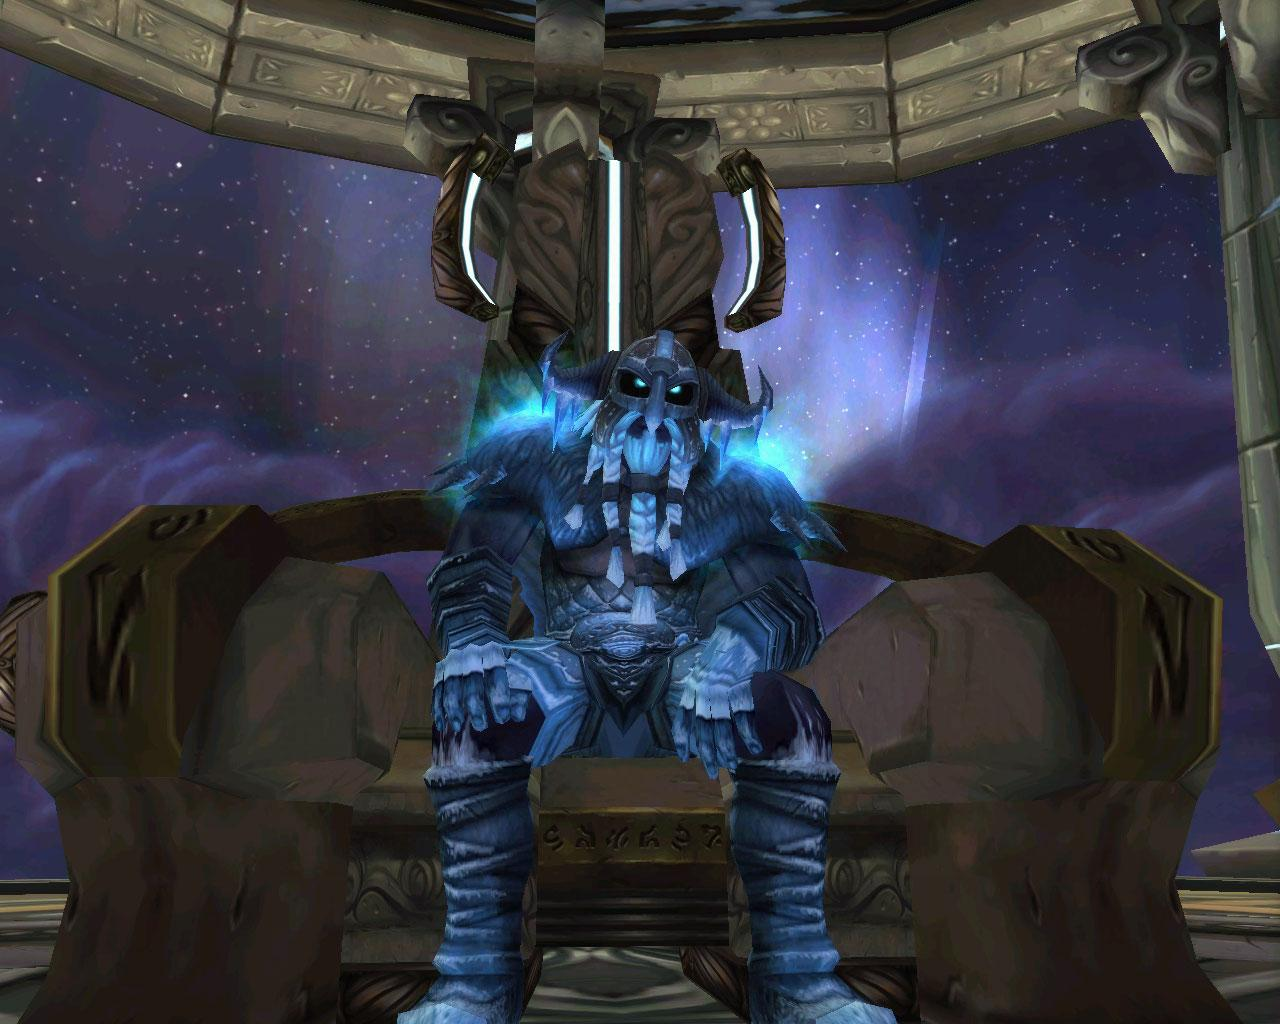 [15/11/08] World of Warcraft: Wrath of the Lich King (Picture: PCGH)